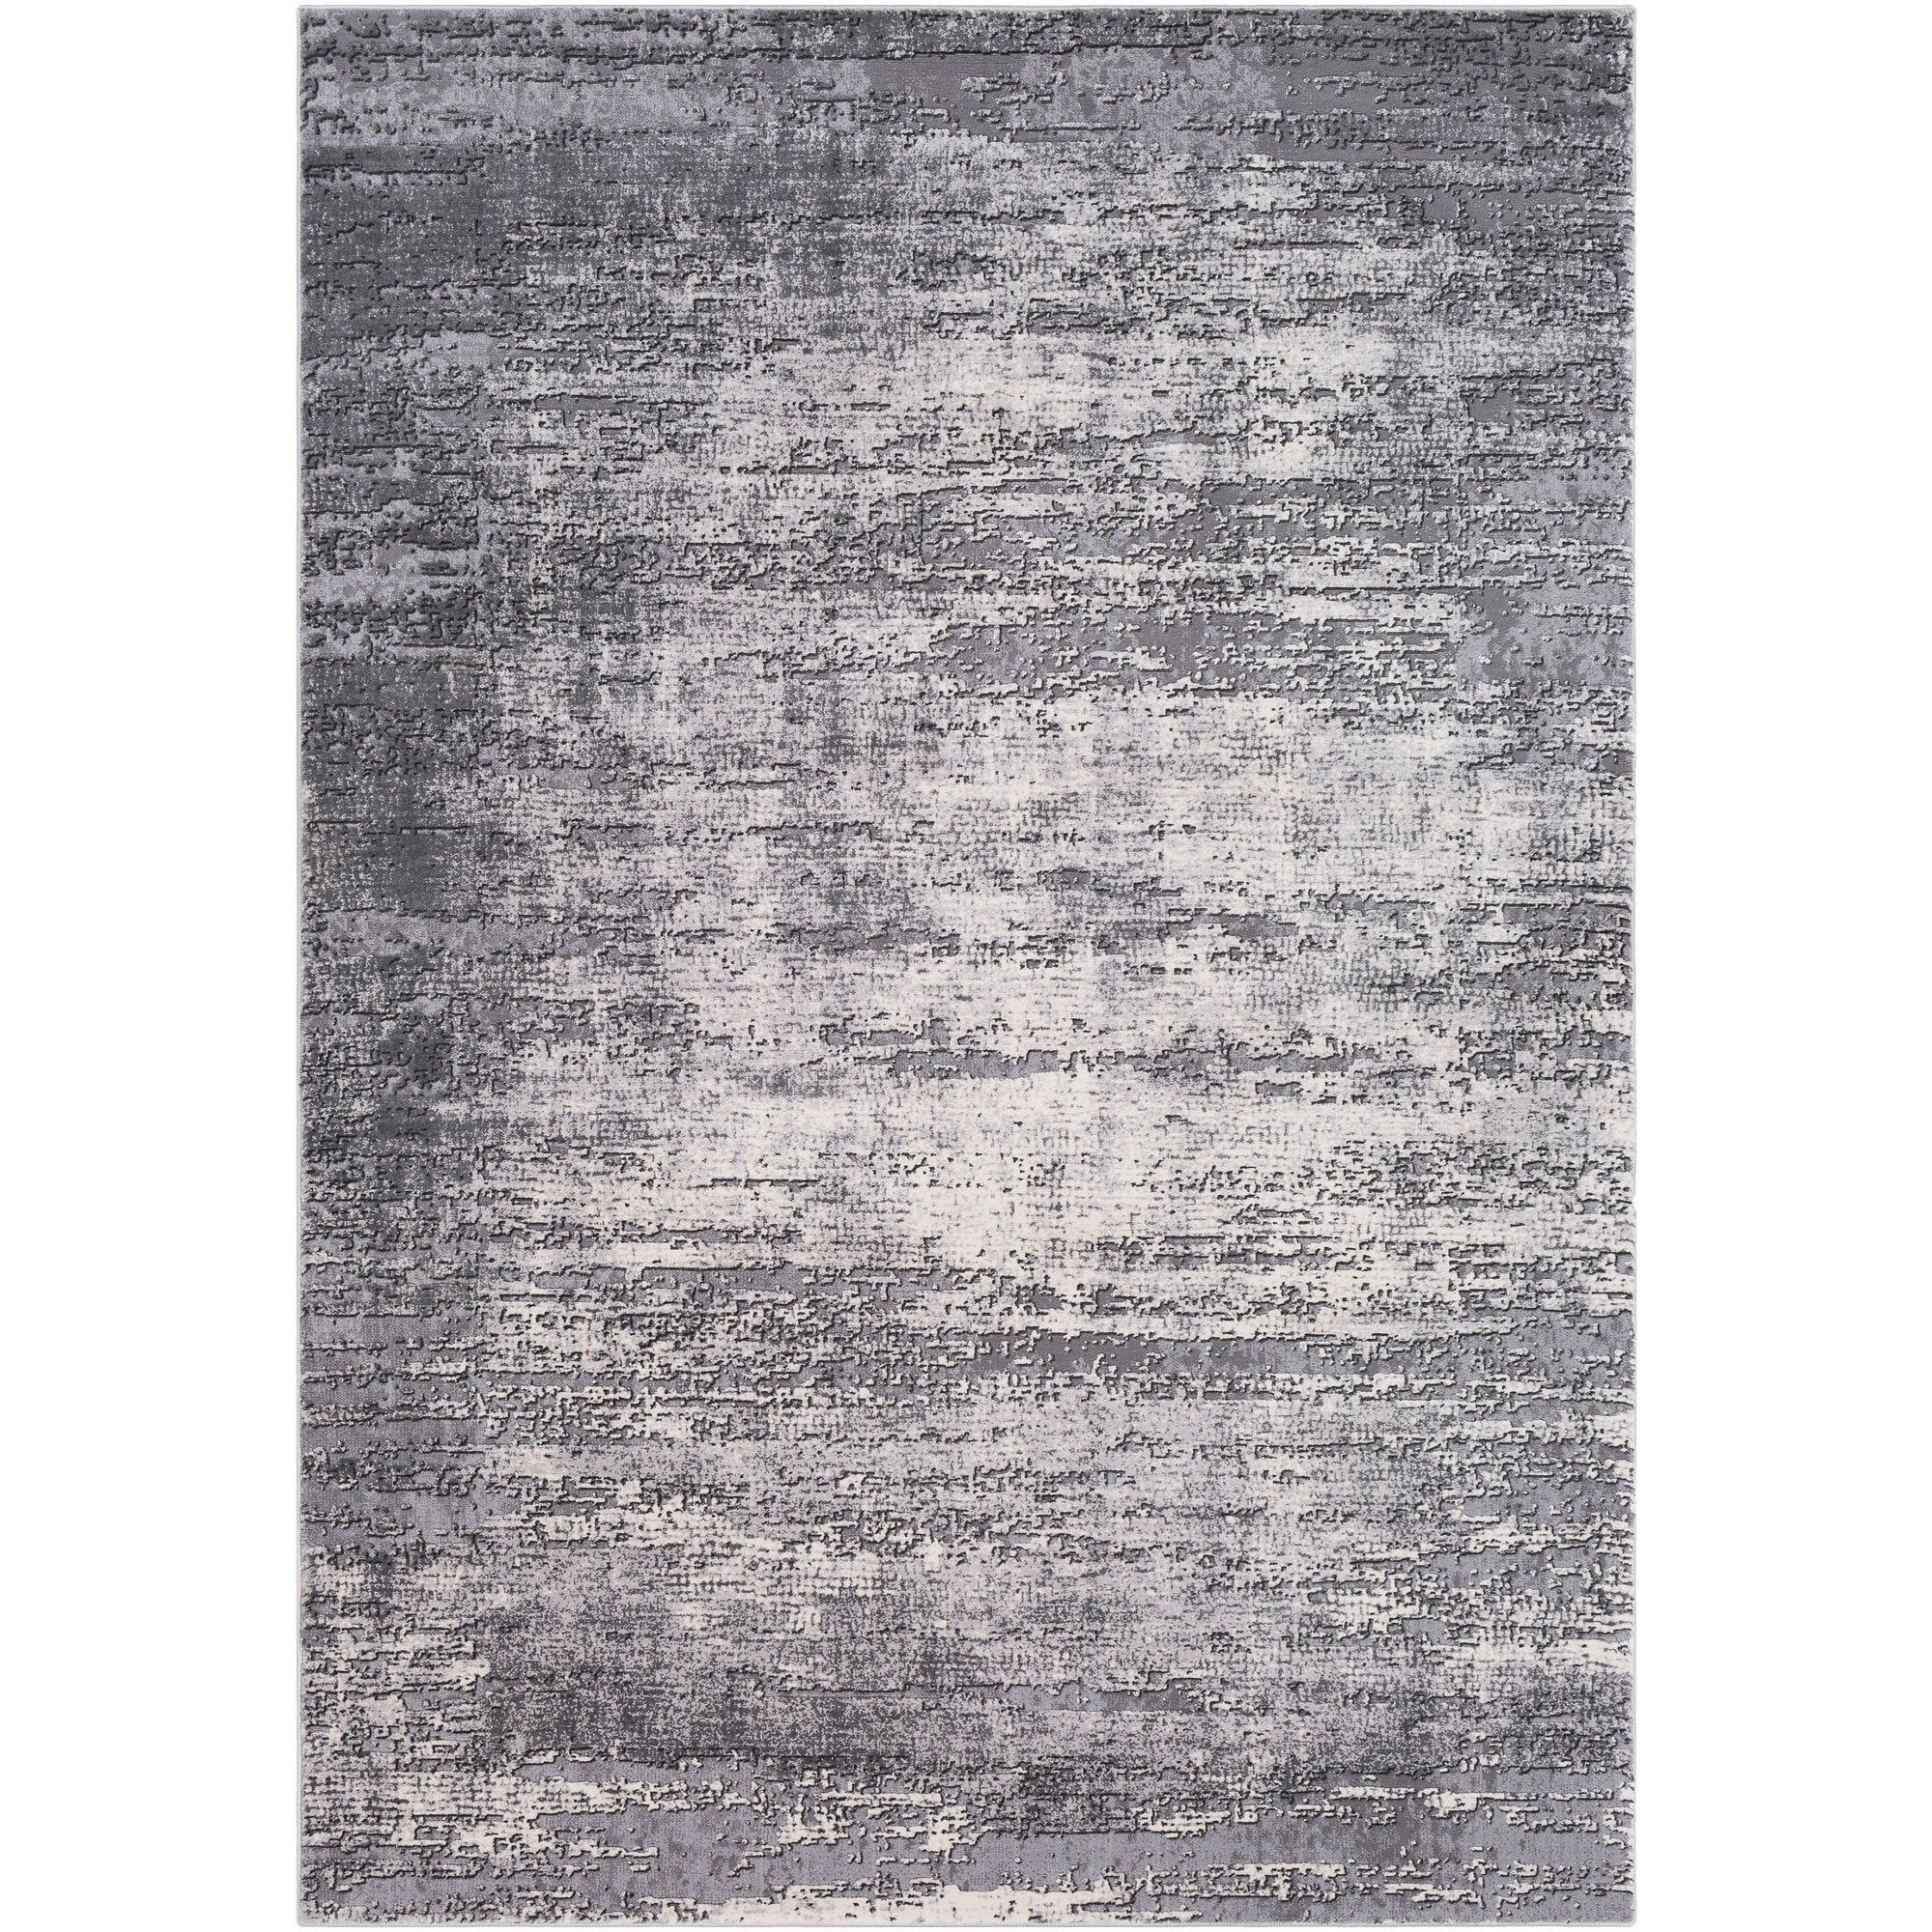 Duncan Grey Distressed Abstract Area Rug 11 10 X 15 11 10 X